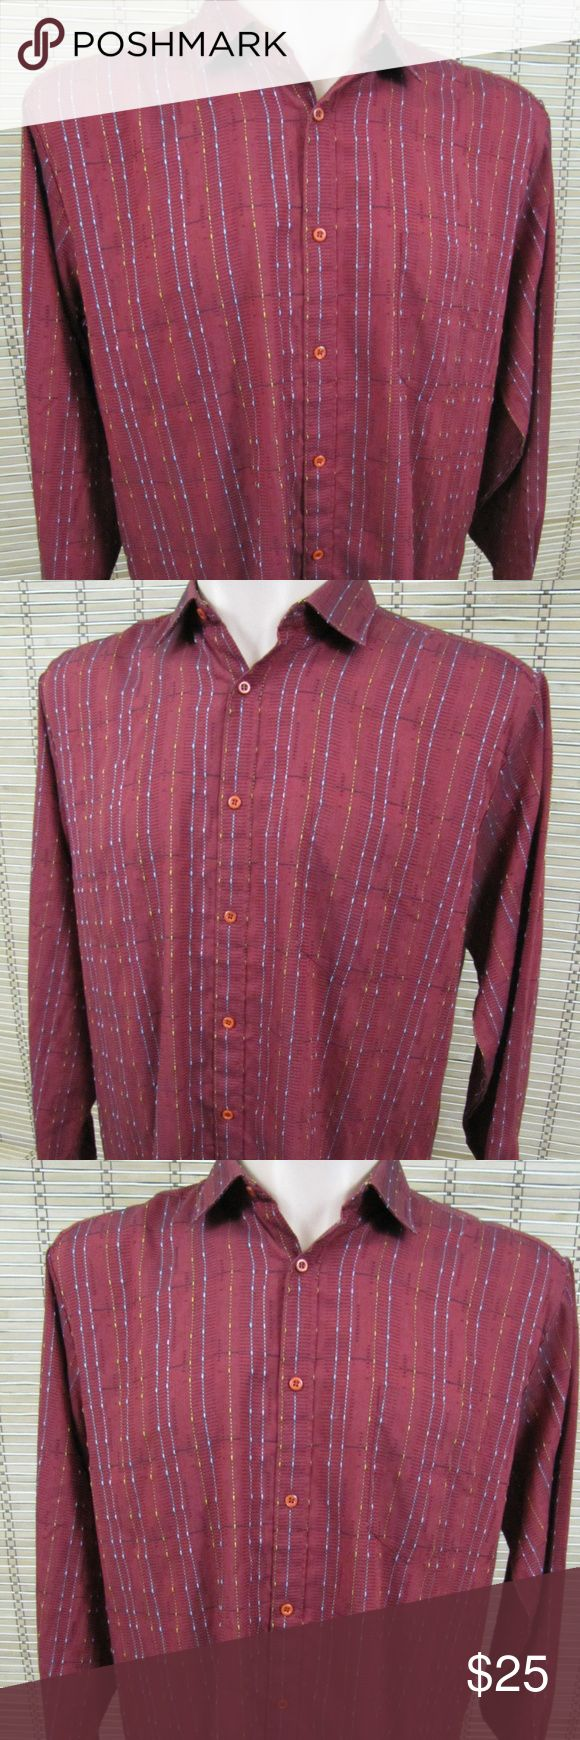 """Bugatchi Uomo Mens Sz L Red Textured Stitch Shirt Inventory # C007  Bugatchi Uomo  This item is in Very Good Condition! There are NO Major Flaws with this item, and is Free and Clear Of any Noticeable Stains, Rips, Tears or Pulls of fabric.  Dark Red Striped, Long Sleeve, Button Front, Textured Yellow/Blue Raised Stitching   Cotton Blend  Dark Red – See Photos  Size: Men's Sz L  Pit to Pit (Across Chest):  22""""  Length (Top of Collar to Hem):  32""""  Sleeves (Shoulder to Cuffs):  25"""" Bugatchi…"""